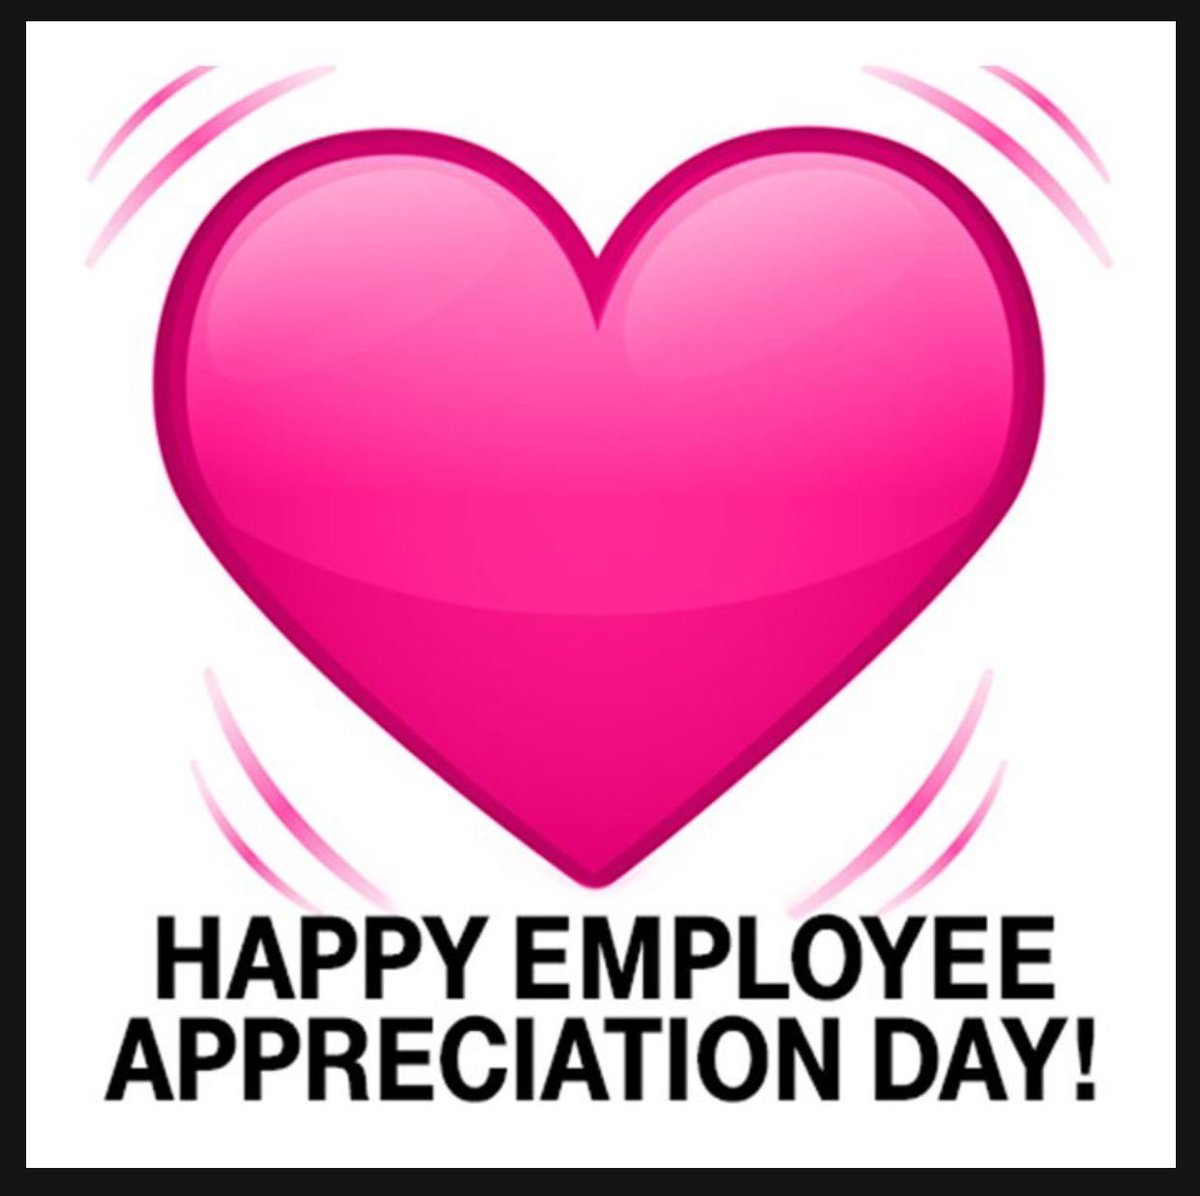 Happy Employee Appreciation Day to all our hardworking teams at @TMobile especially our Small Town Rural Team! I could not be more proud and thankful that we can work together each day. @richgarwood @JonFreier